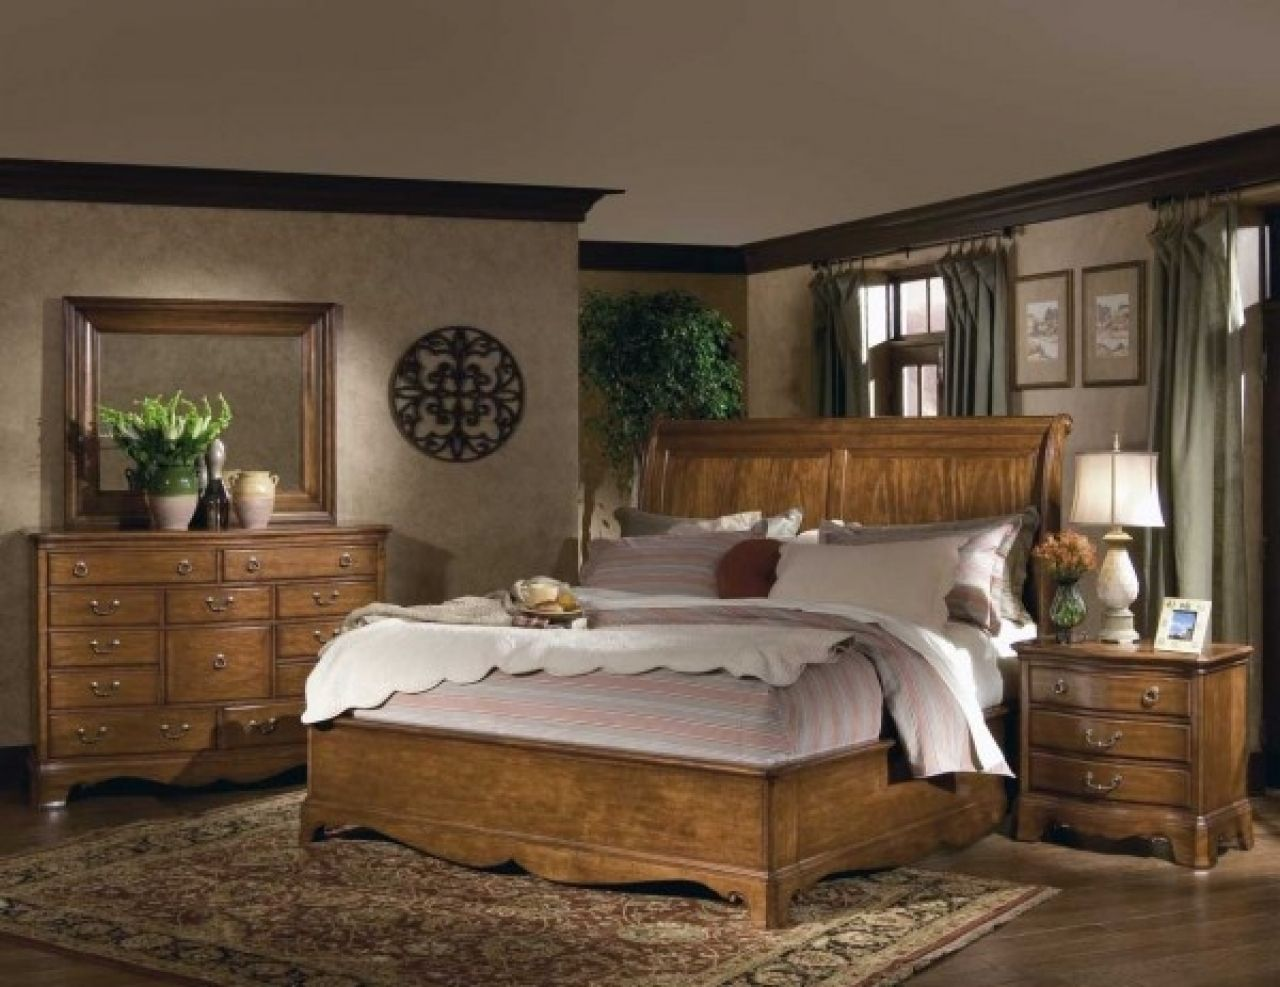 Bedroom furniture ethan allen | design ideas 2017-2018 | Pinterest